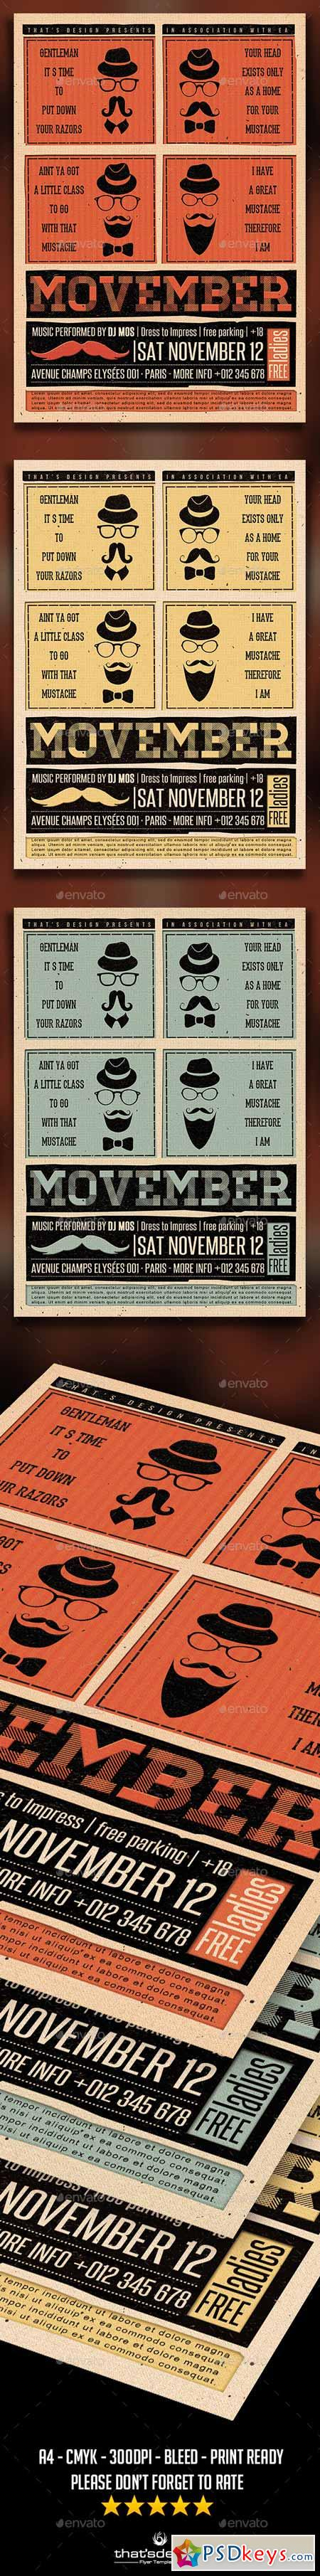 Movember Flyer Template 9368834